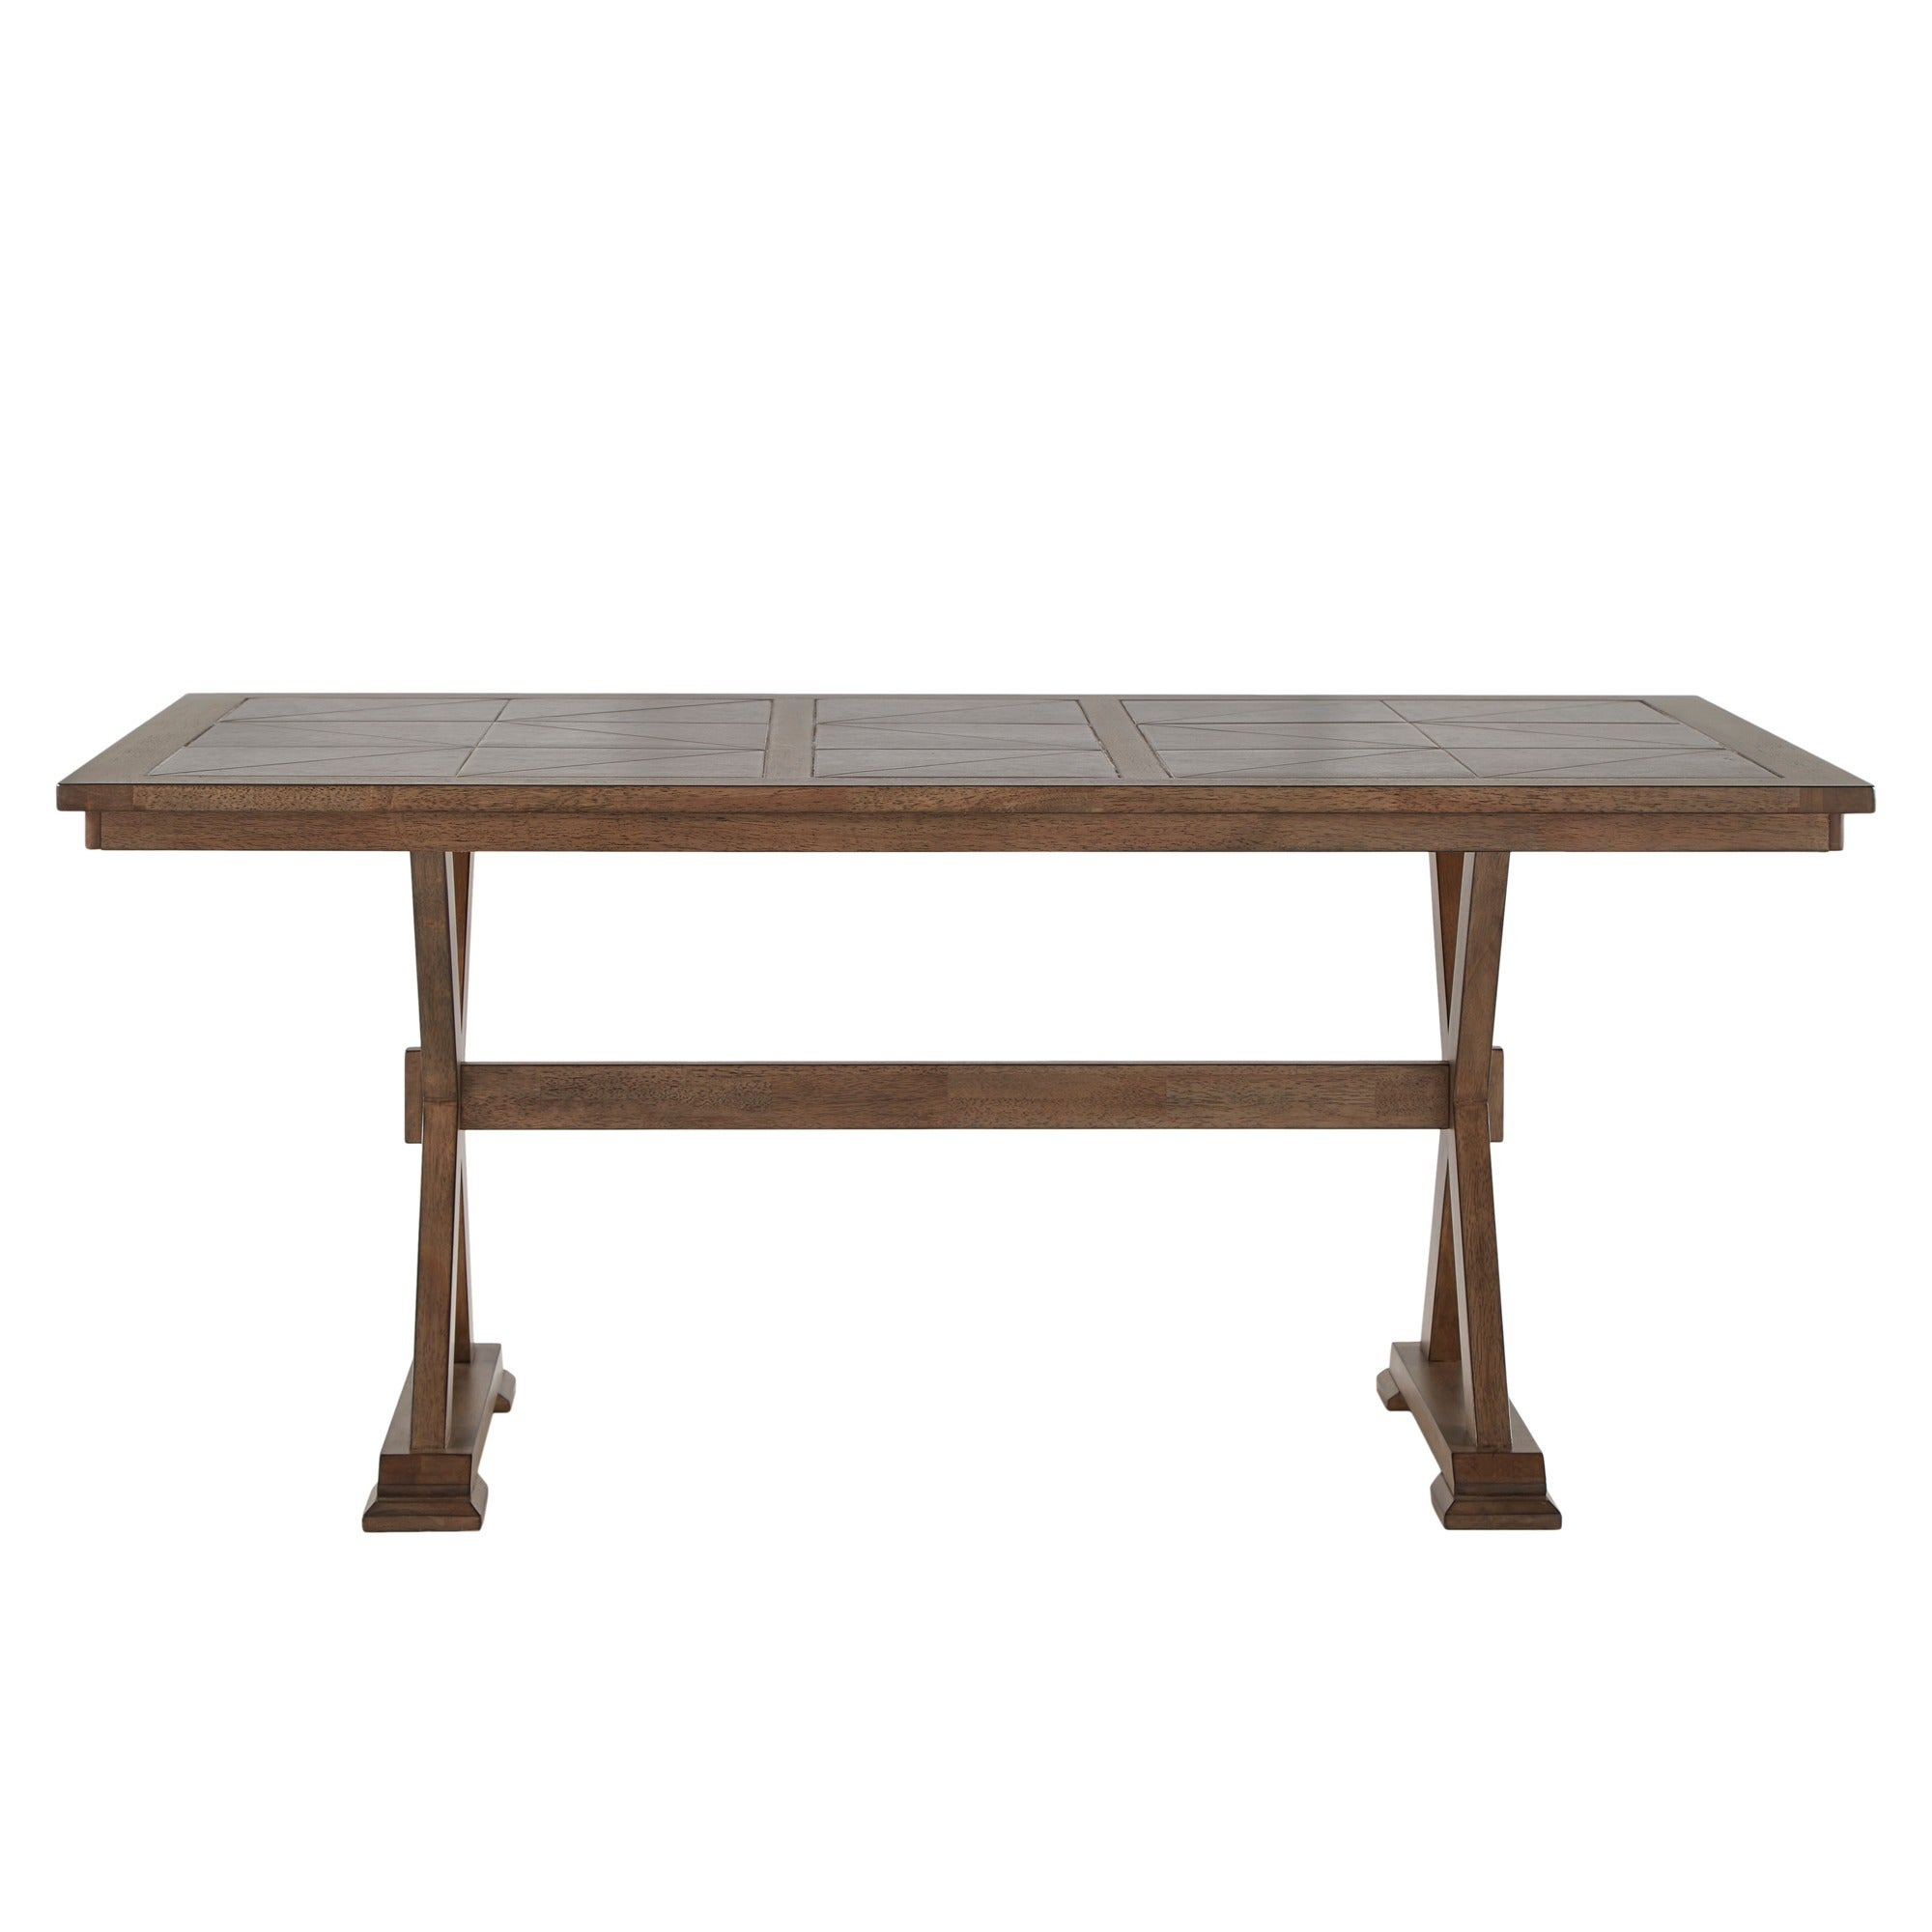 Pennington Grey Wood Rectangular Tile Top Trestle Dining Table by iNSPIRE Q  Artisan - Free Shipping